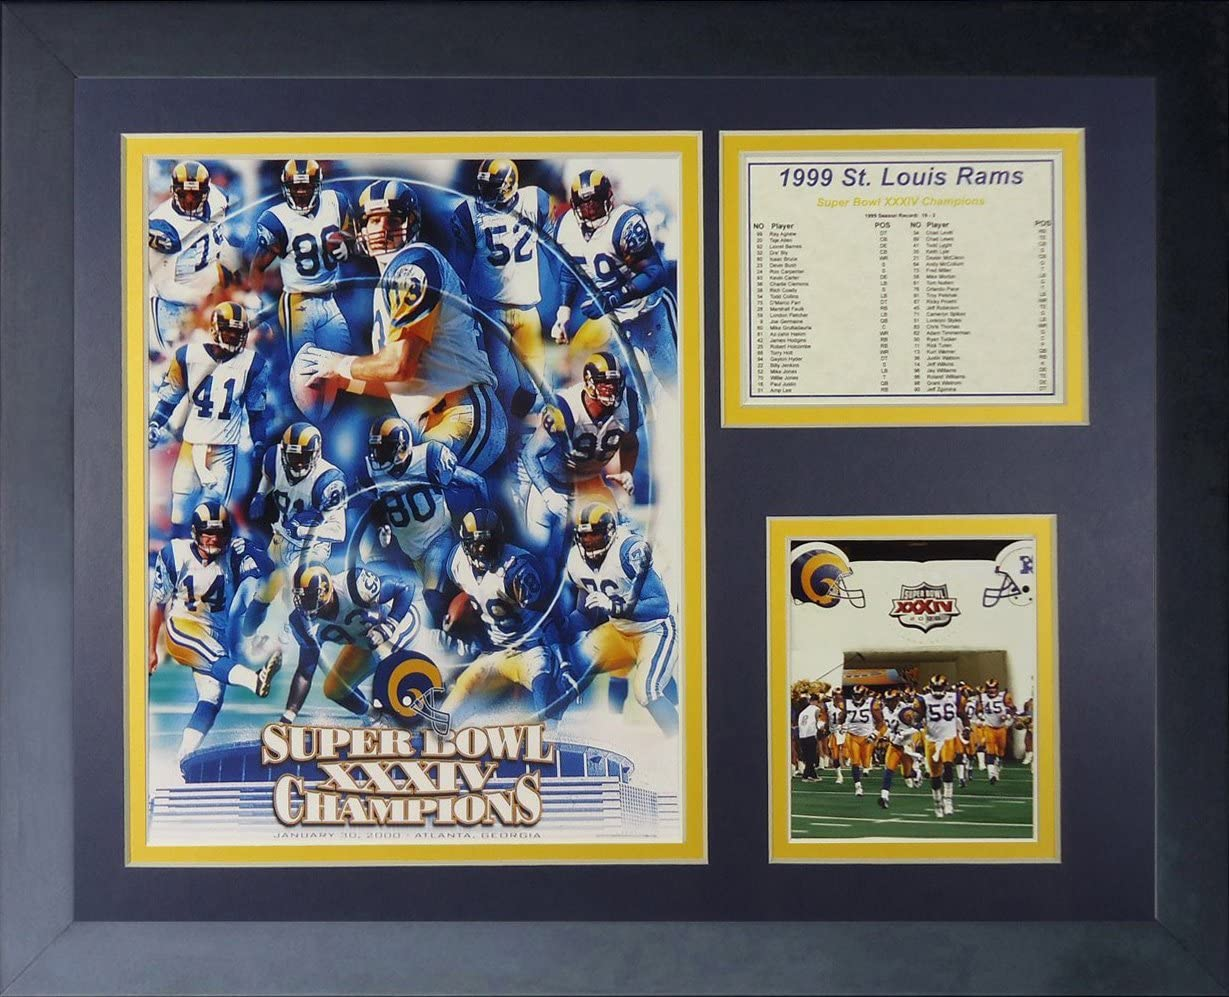 Louis Rams Champions Framed Photo Collage Legends Never Die 1999 St 11 x 14-Inch